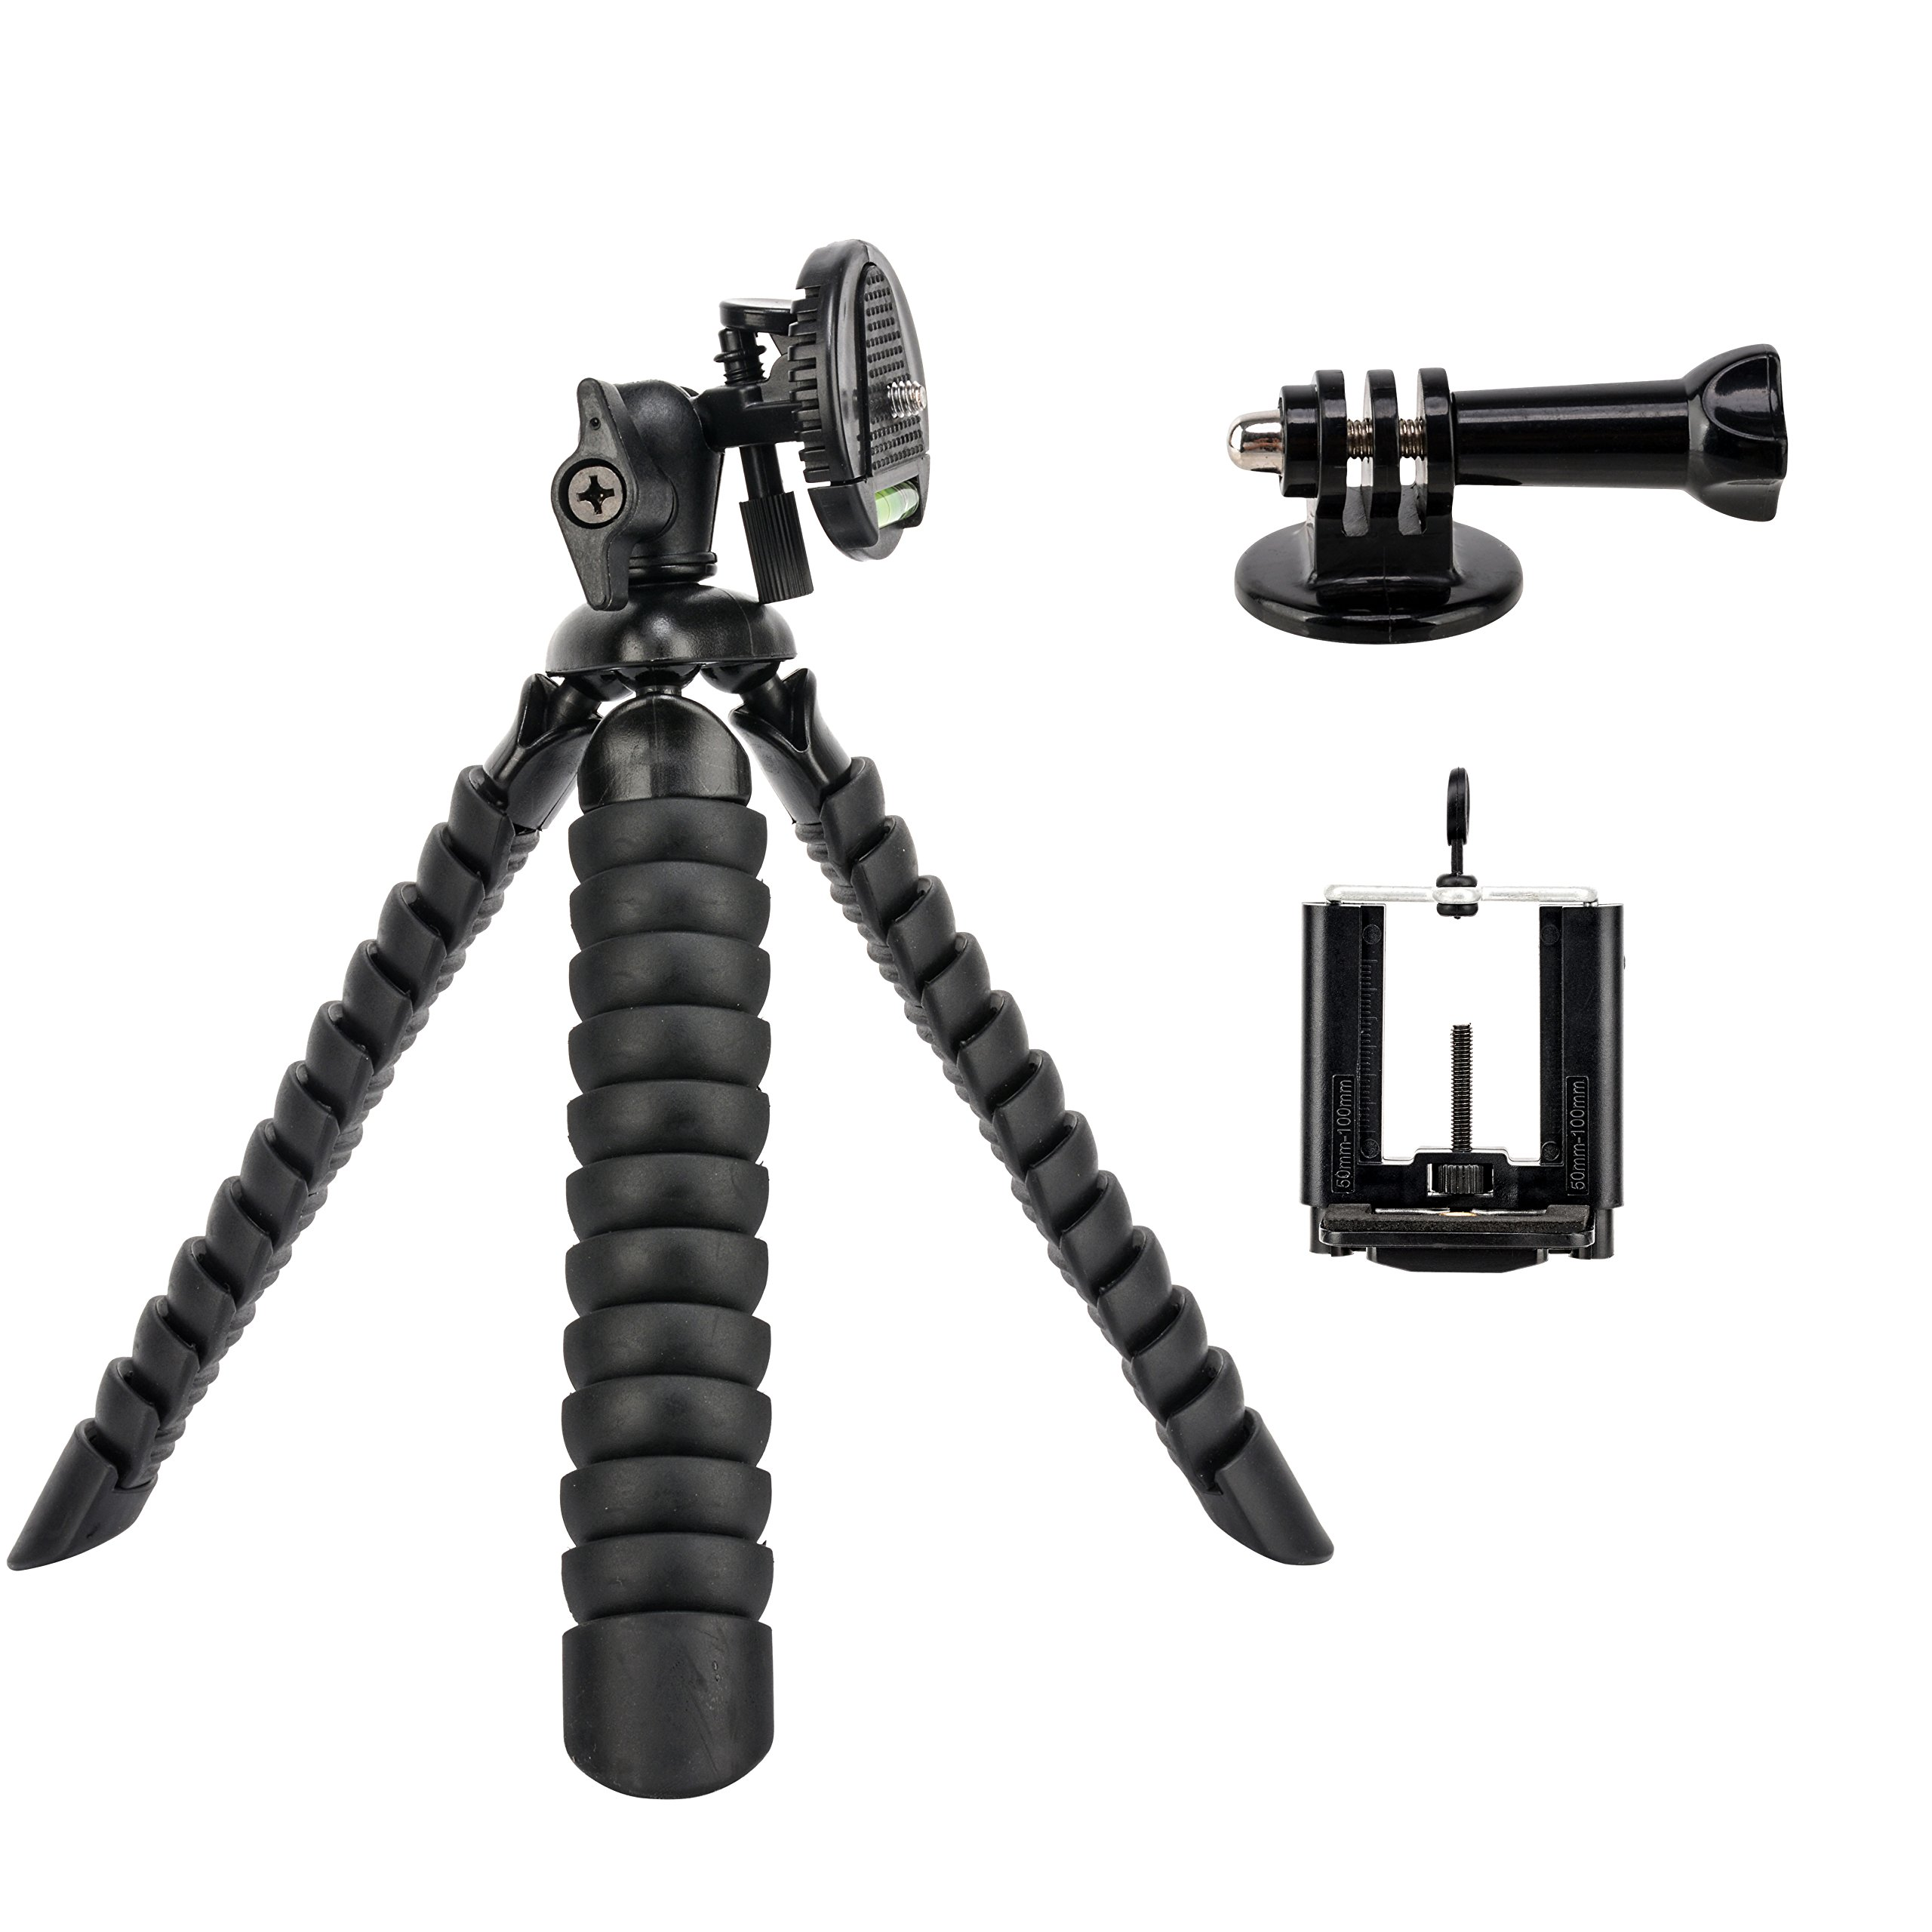 Tairoad Flexible Tripod Mini Desk Travel Tripod with Free Smartphone and Gopro Mount Adapter MG12